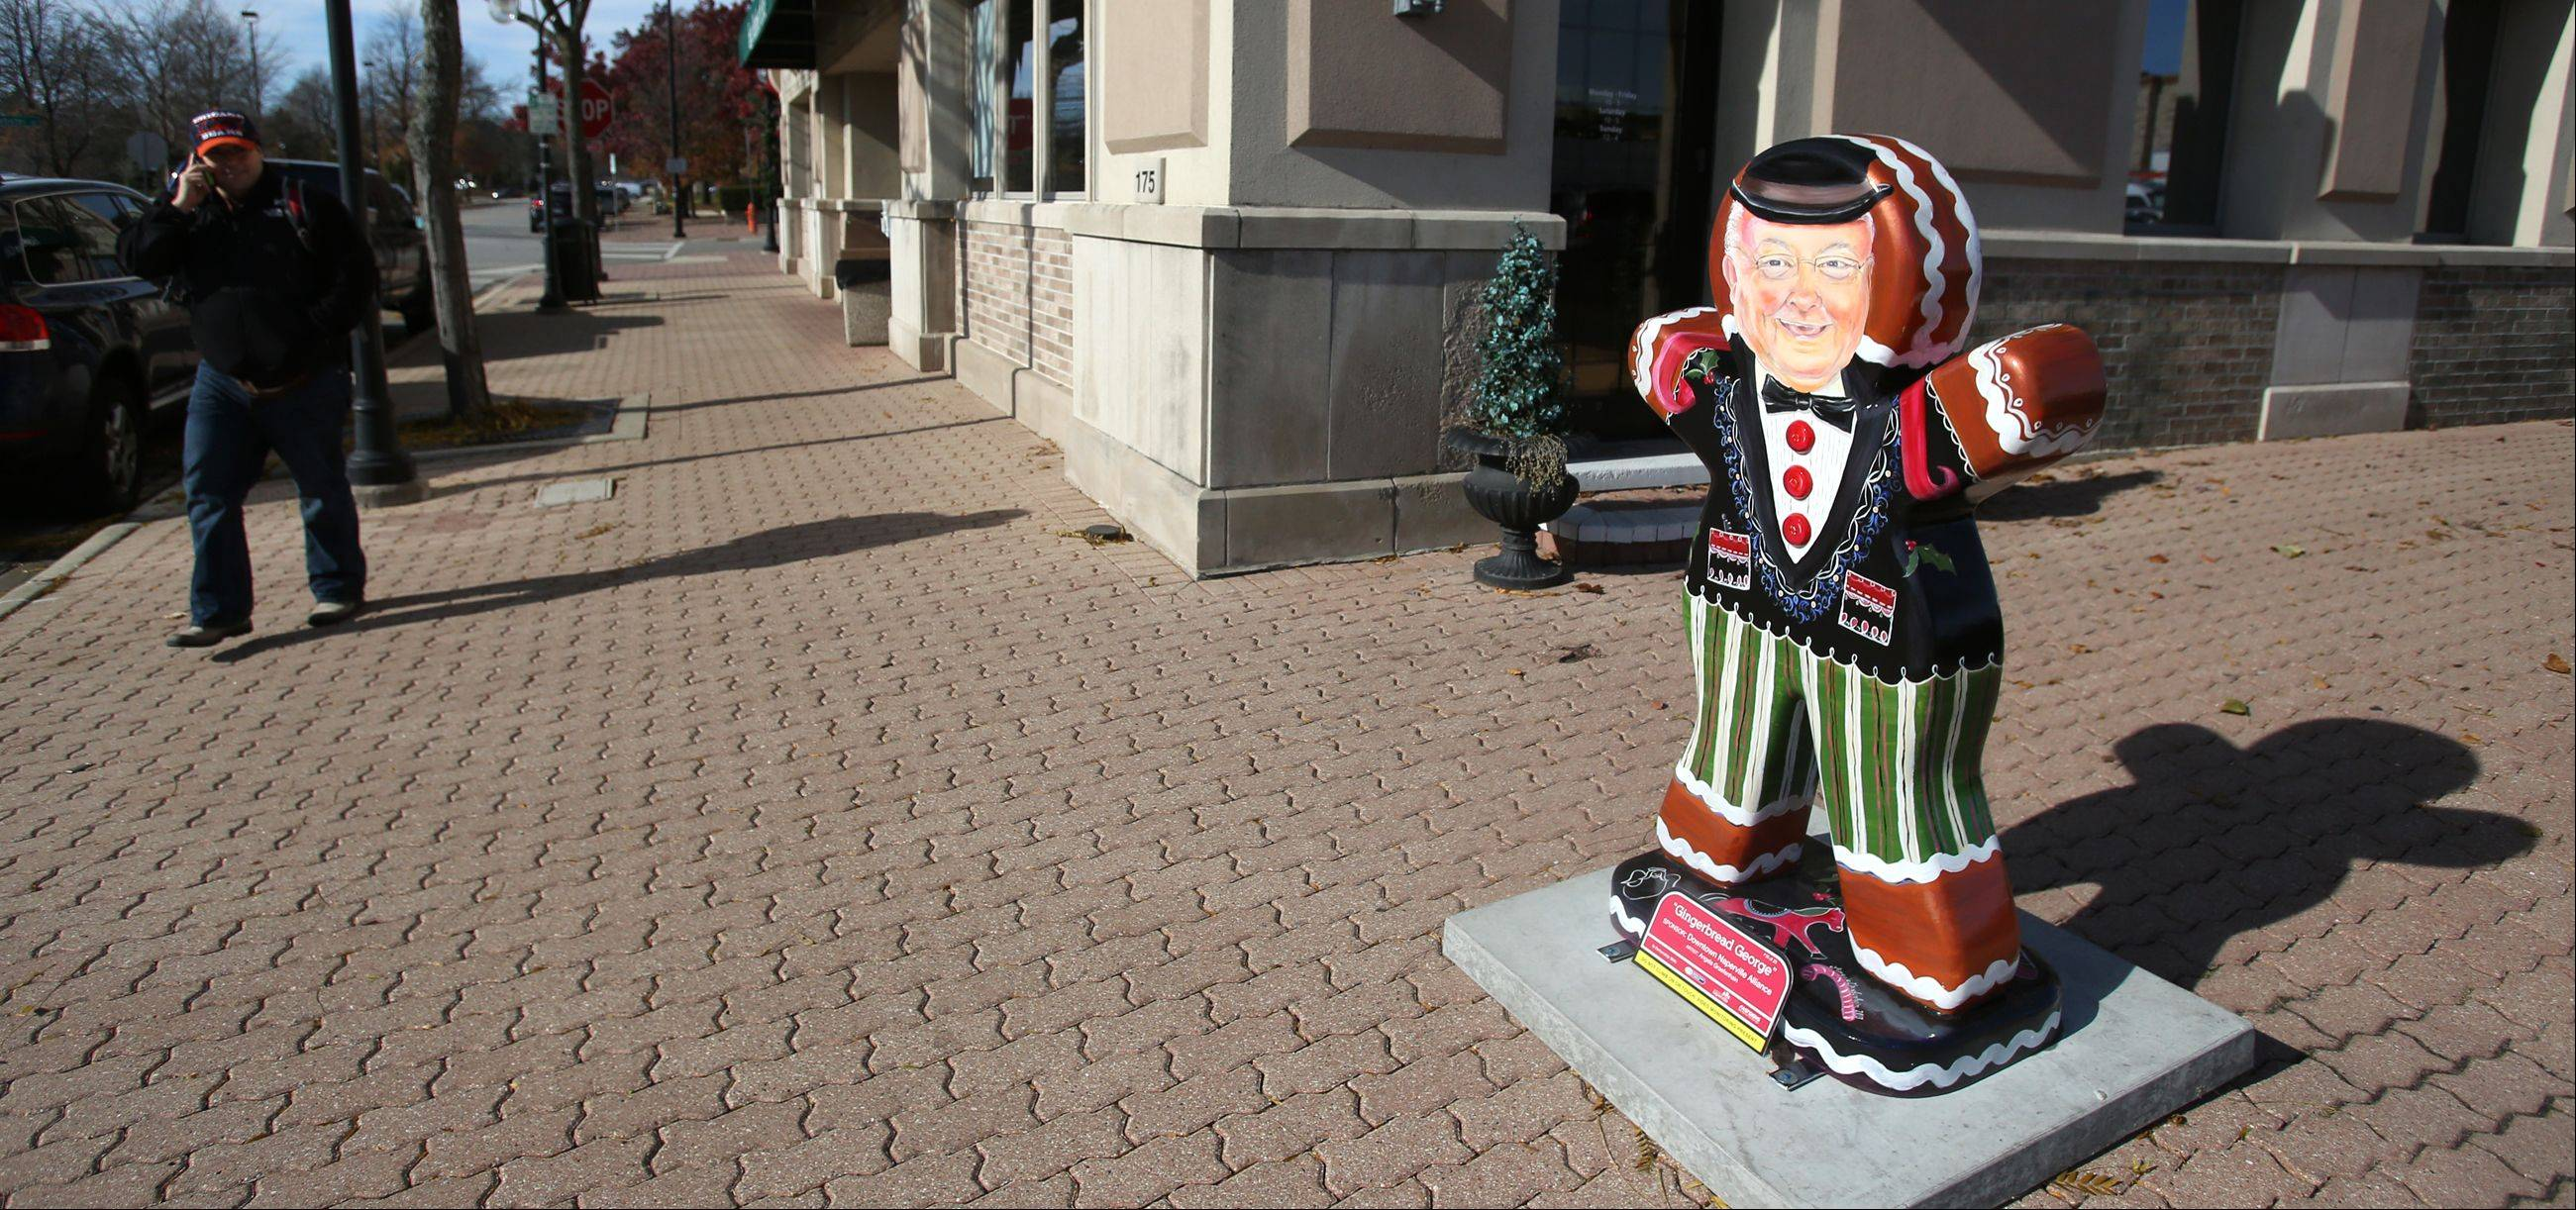 """Gingerbread George,"" a sculpture painted to look like Naperville Mayor George Pradel, rests on a downtown Jackson Avenue corner, where it is one of 25 gingerbread sculptures that will be on display throughout the holiday season. Businesses have sponsored the sculptures, painted by local artists or students, through a Downtown Naperville Alliance holiday art program."